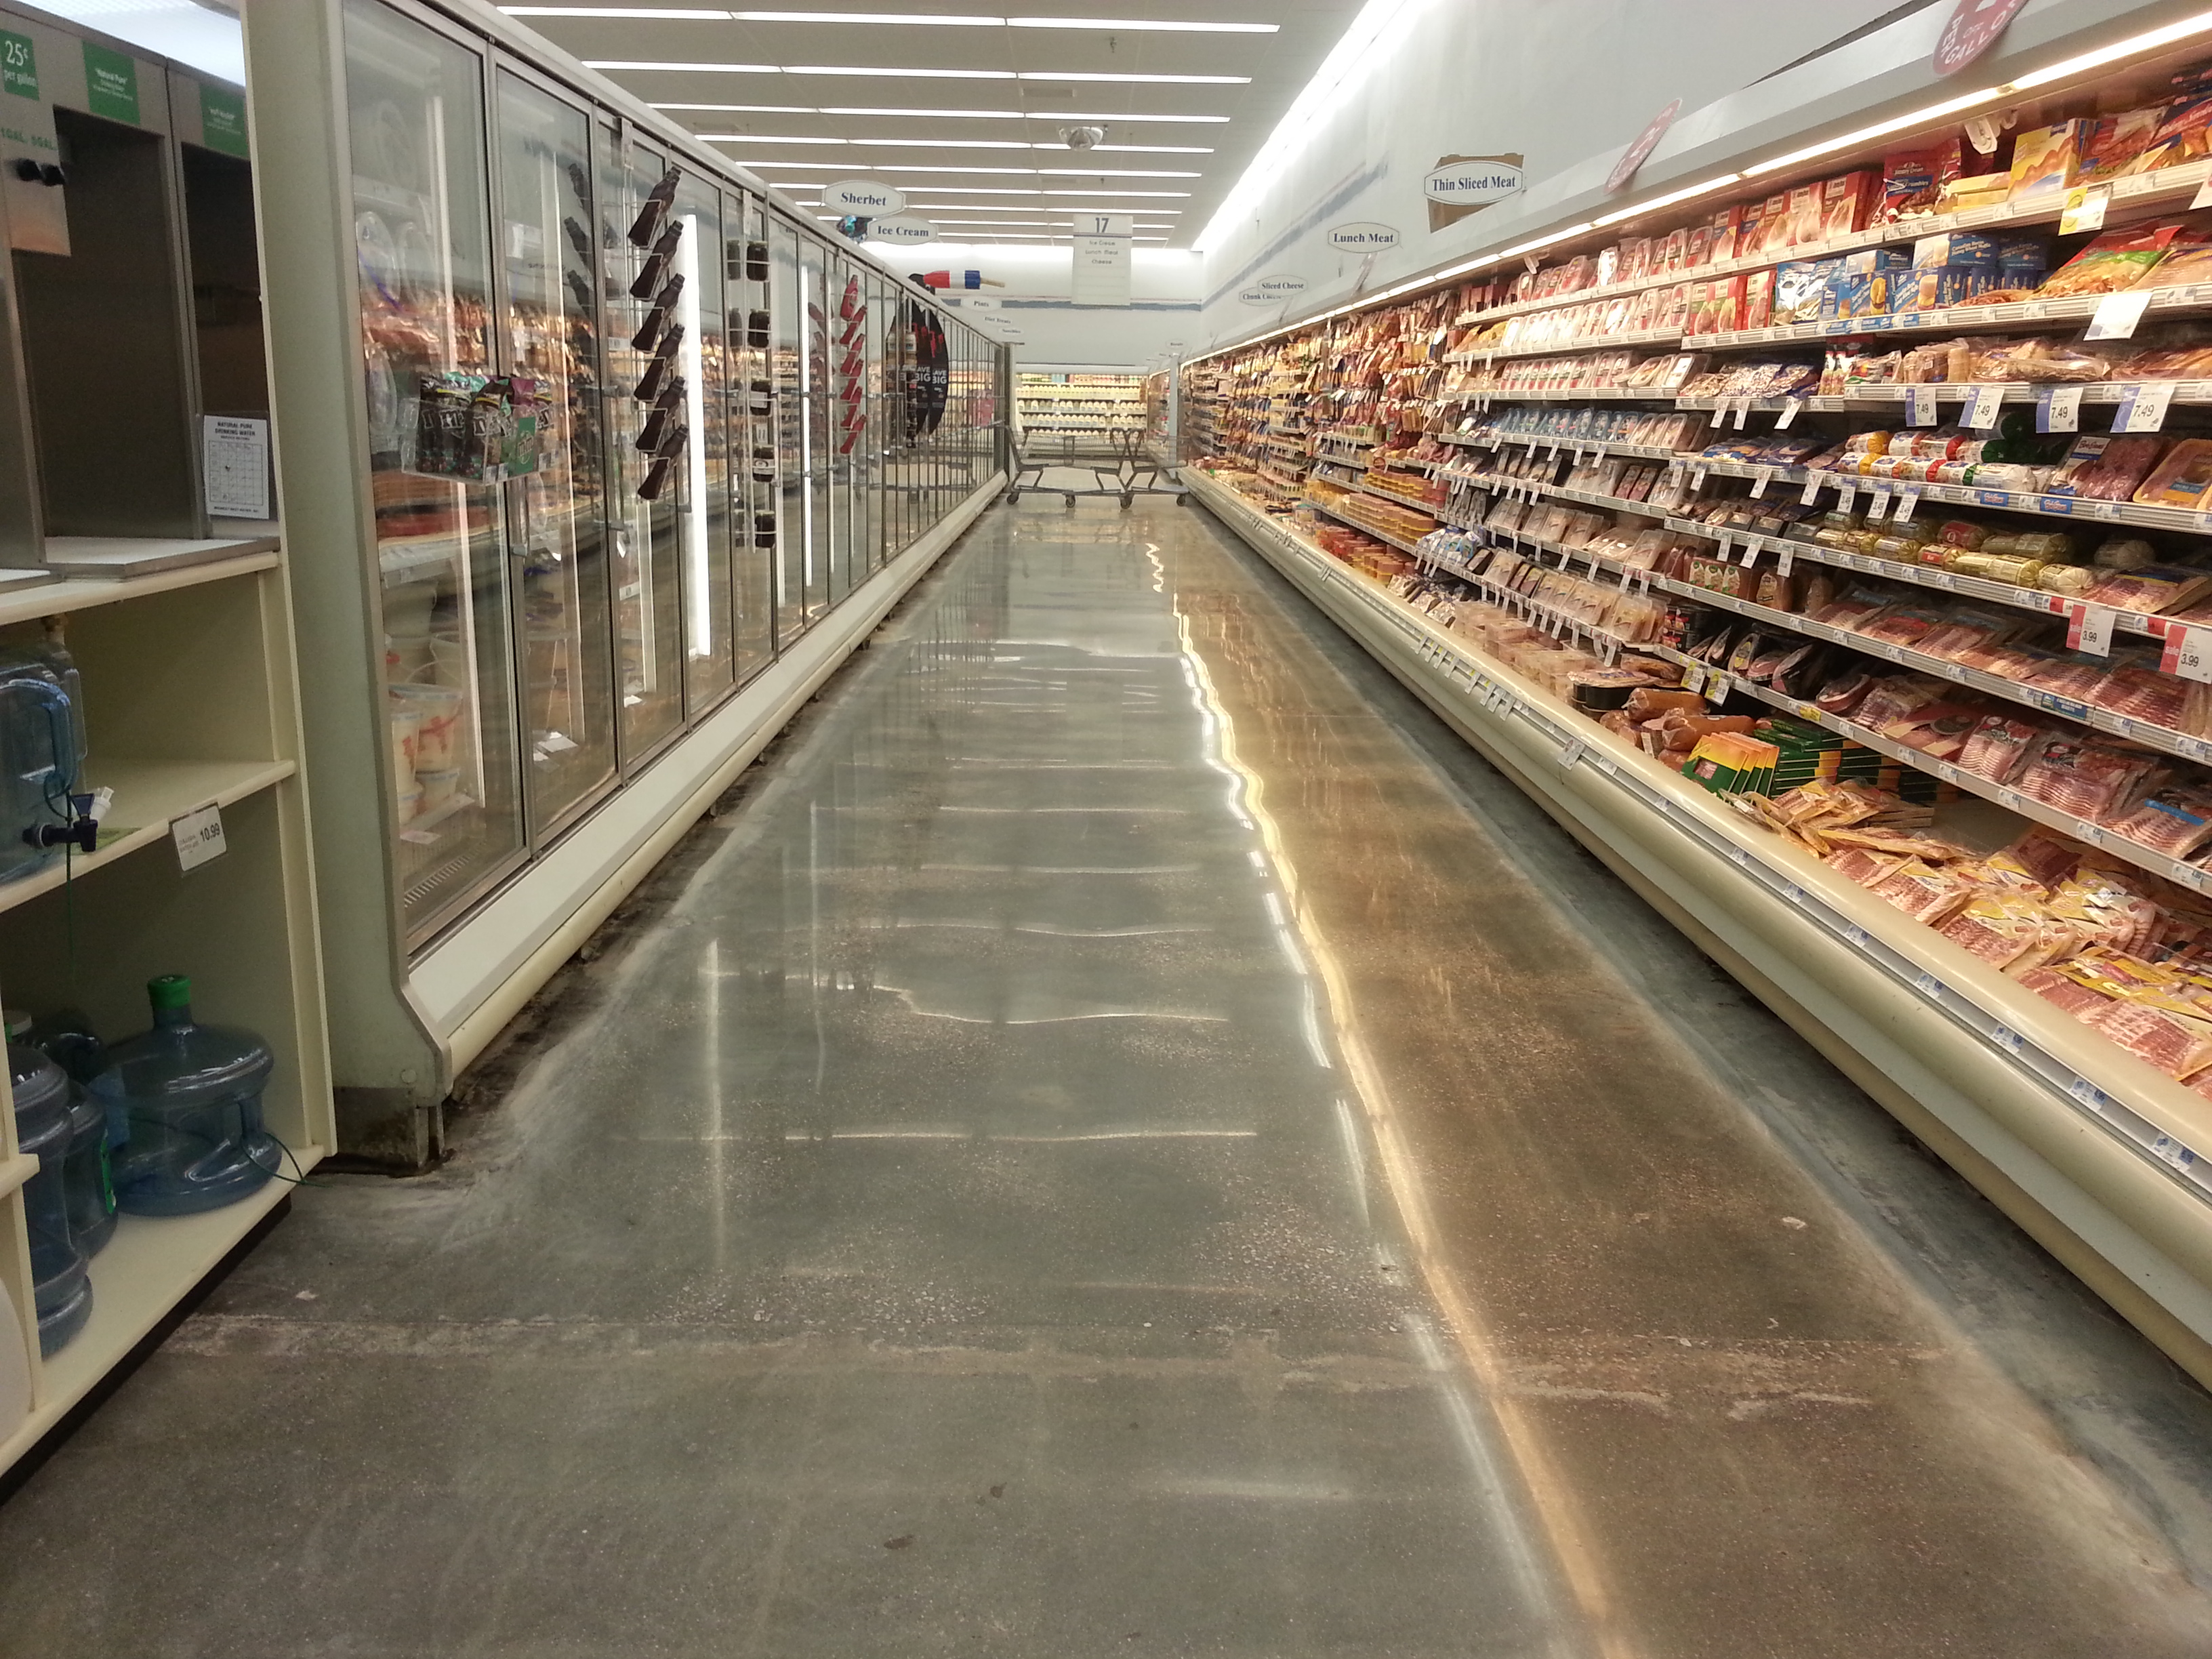 VCT (Vinyl Composition Tile) tile removal on a grocery store floor with no edge work in Iowa City, IA